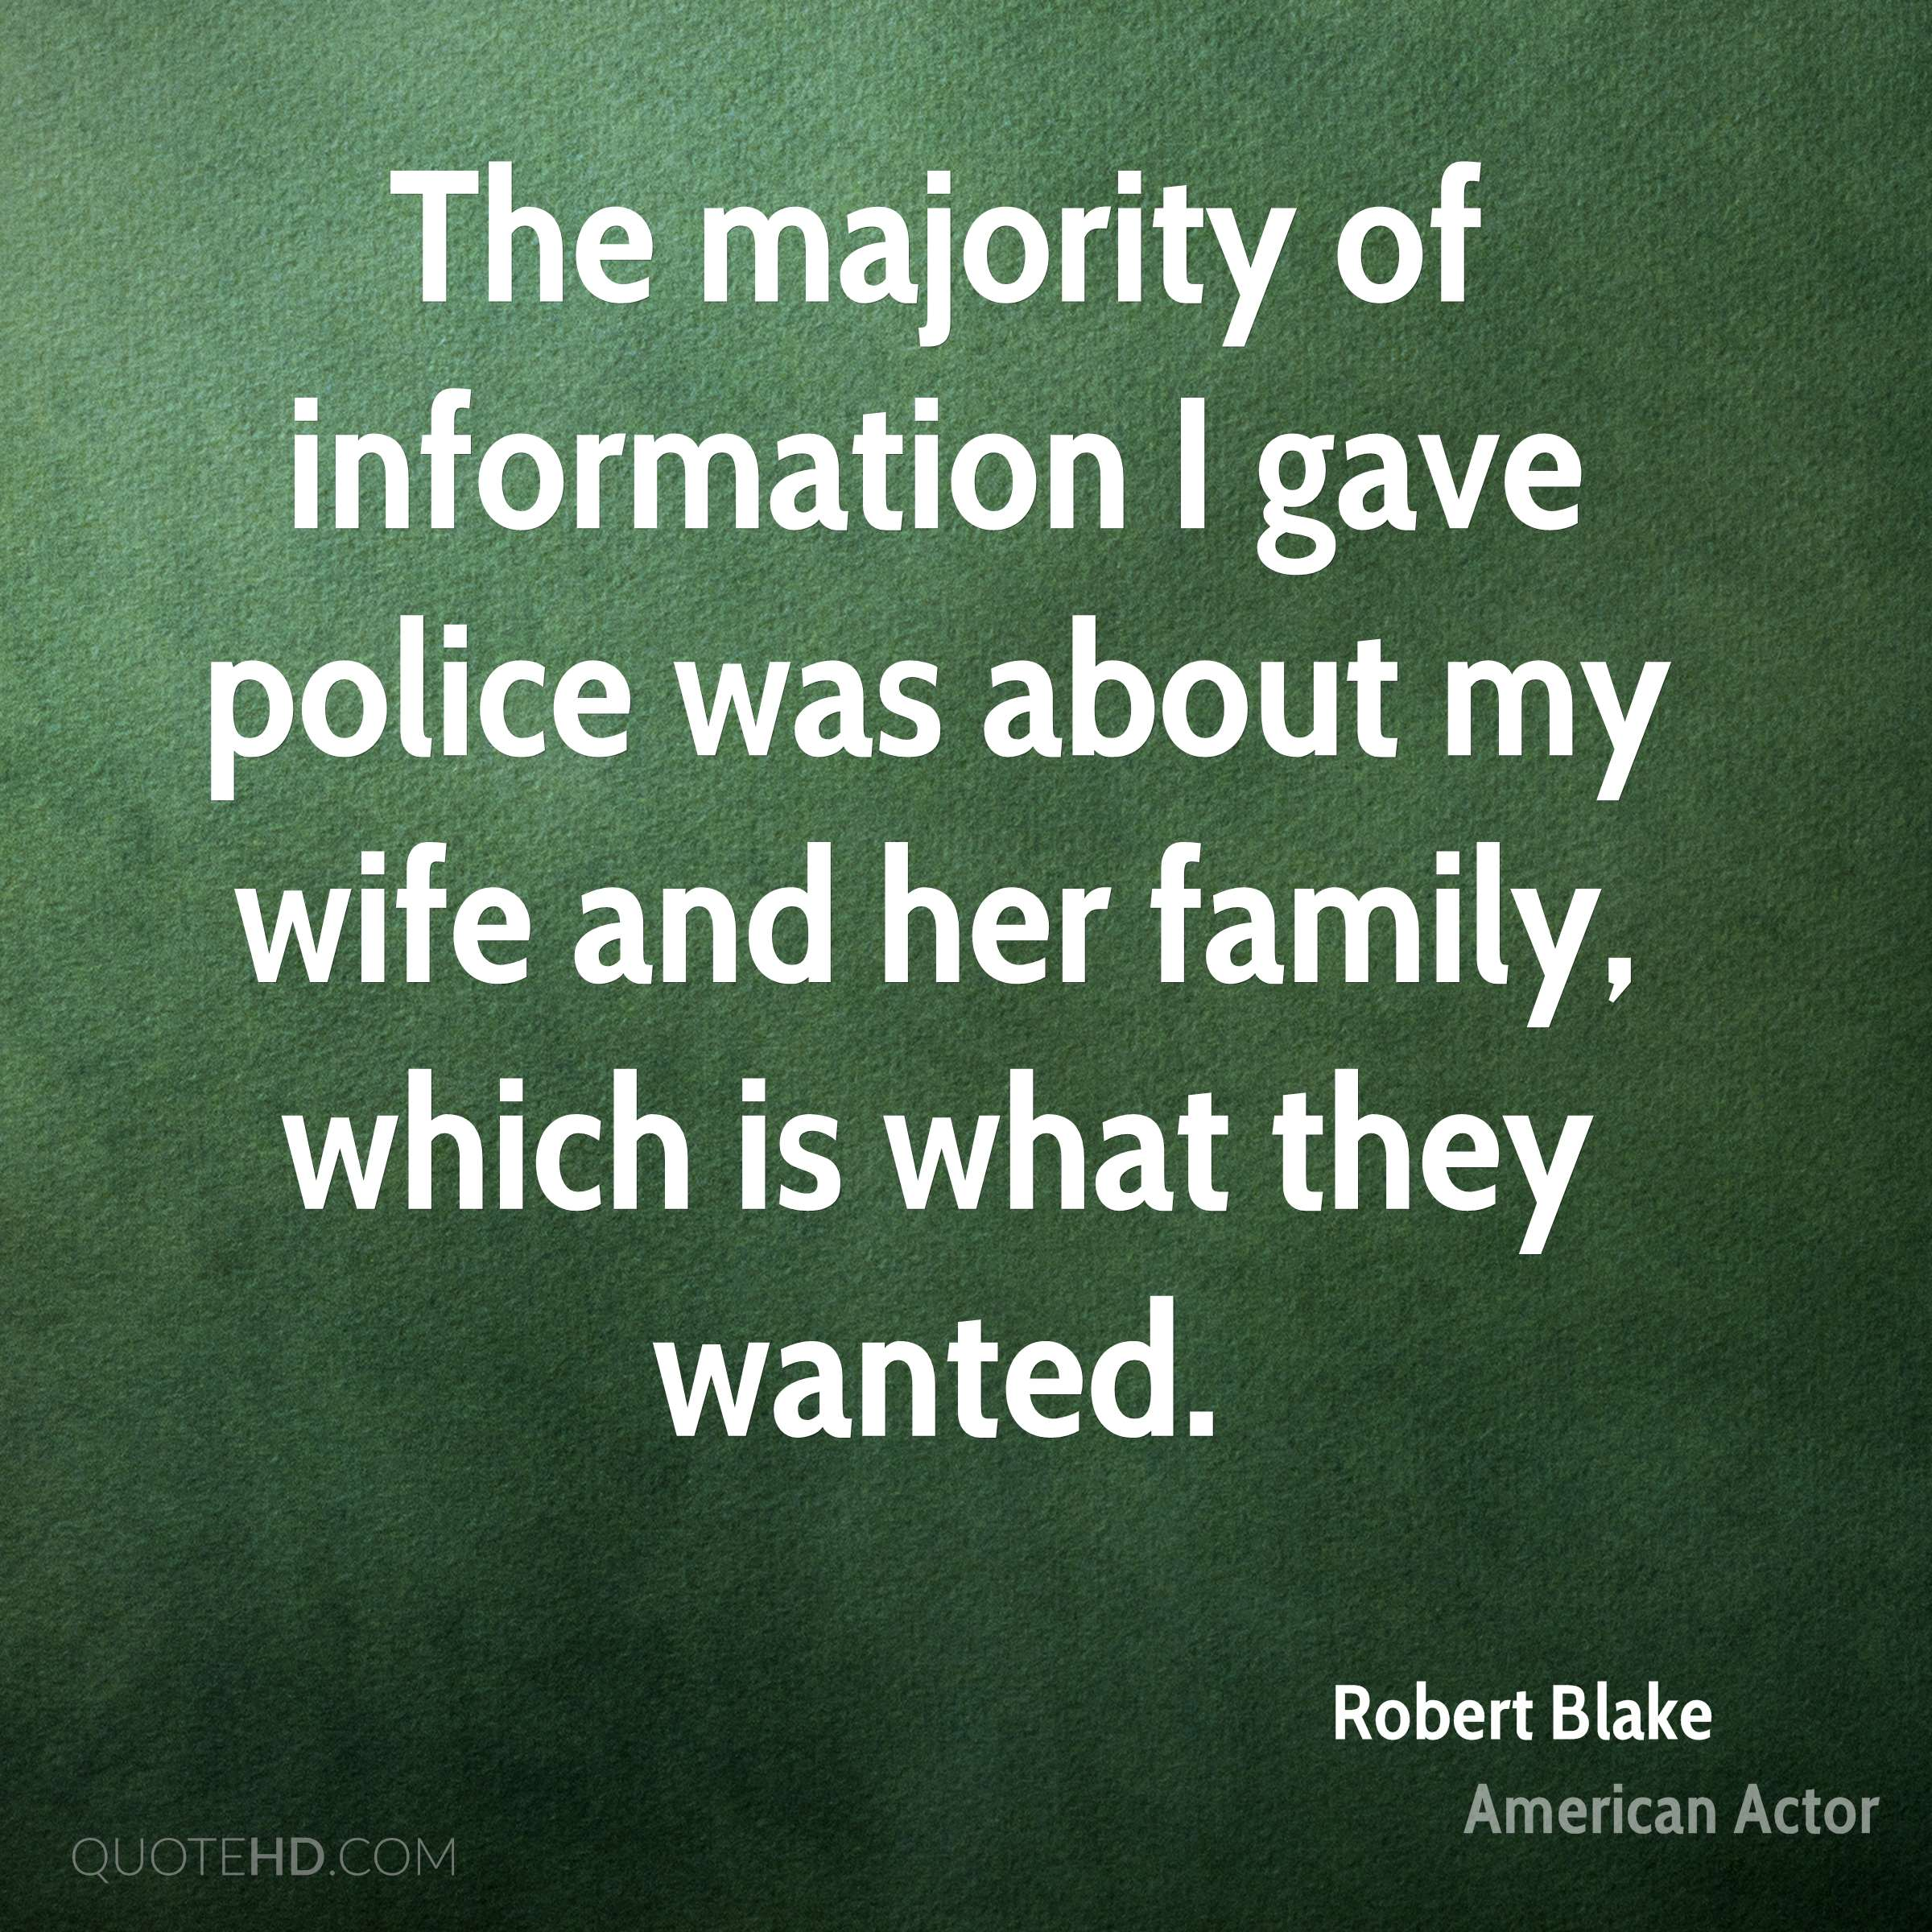 The majority of information I gave police was about my wife and her family, which is what they wanted.